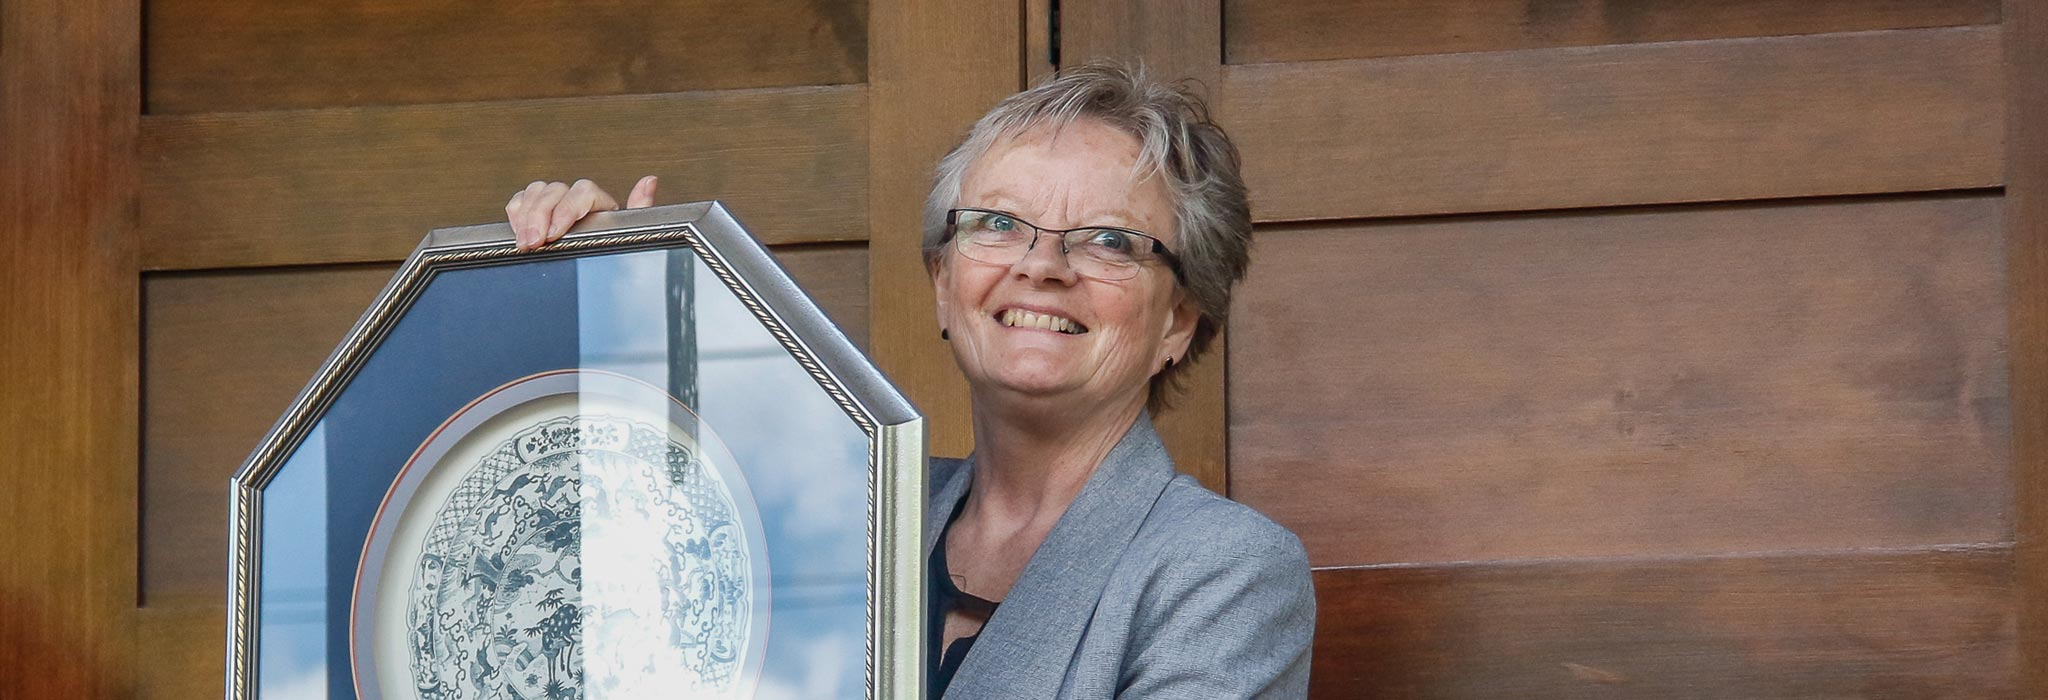 Lorna Fandrich holding a framed plate at the doors of the museum